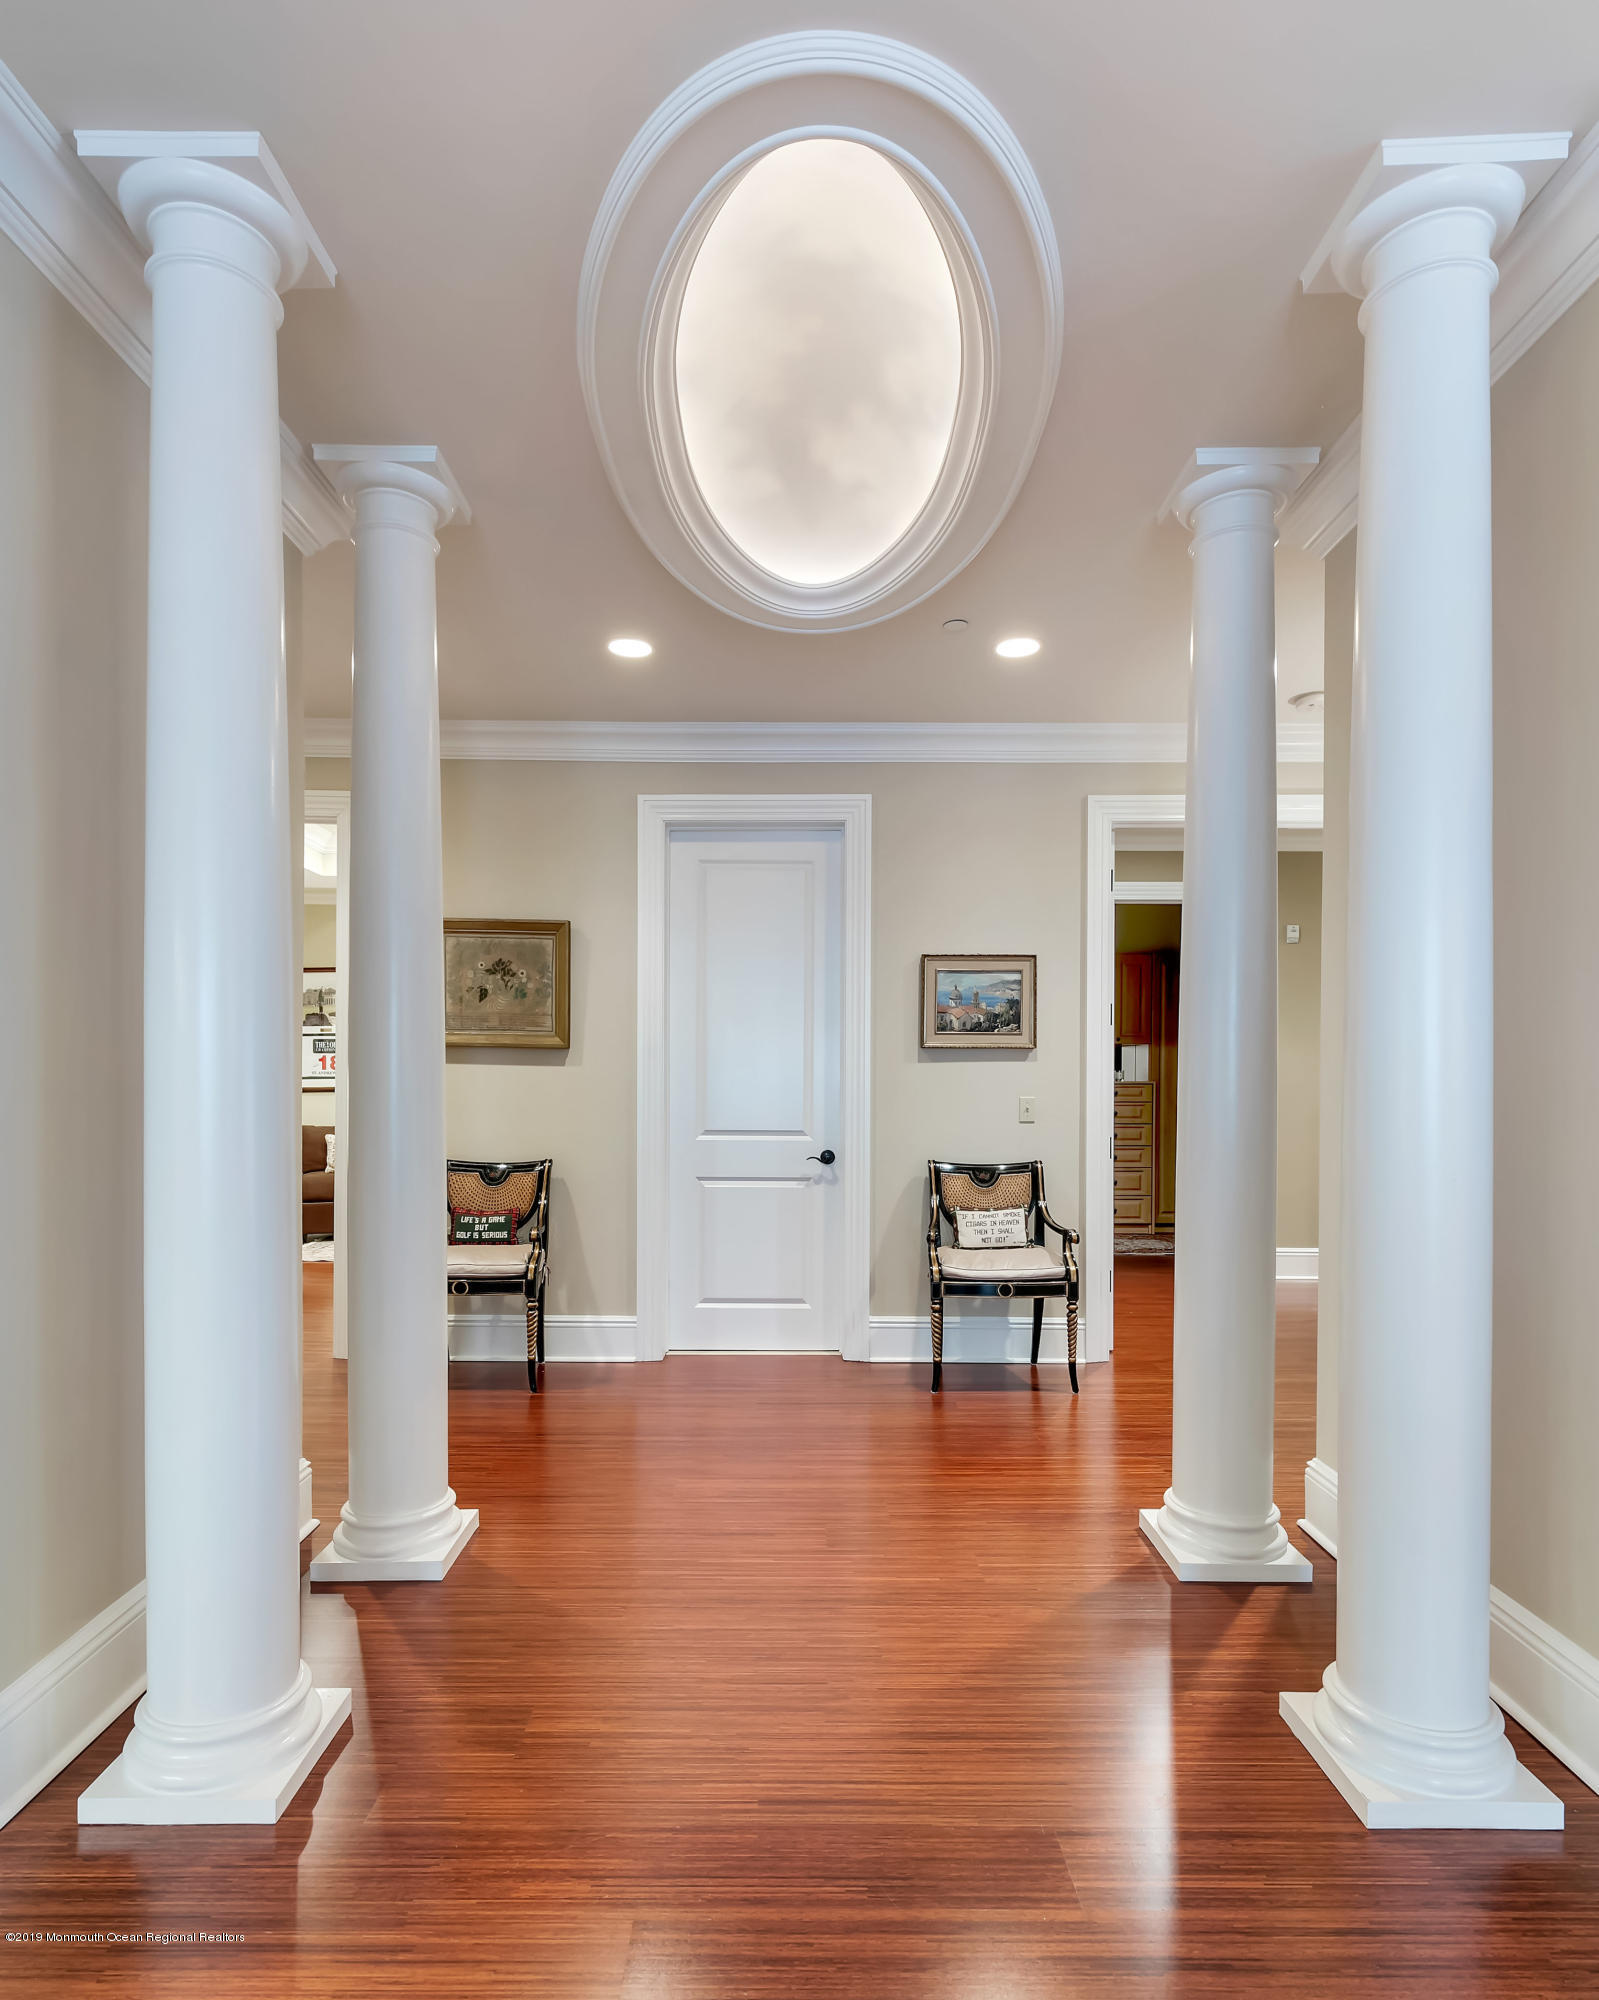 Walkway w Custom Painted Dome at Ceiling